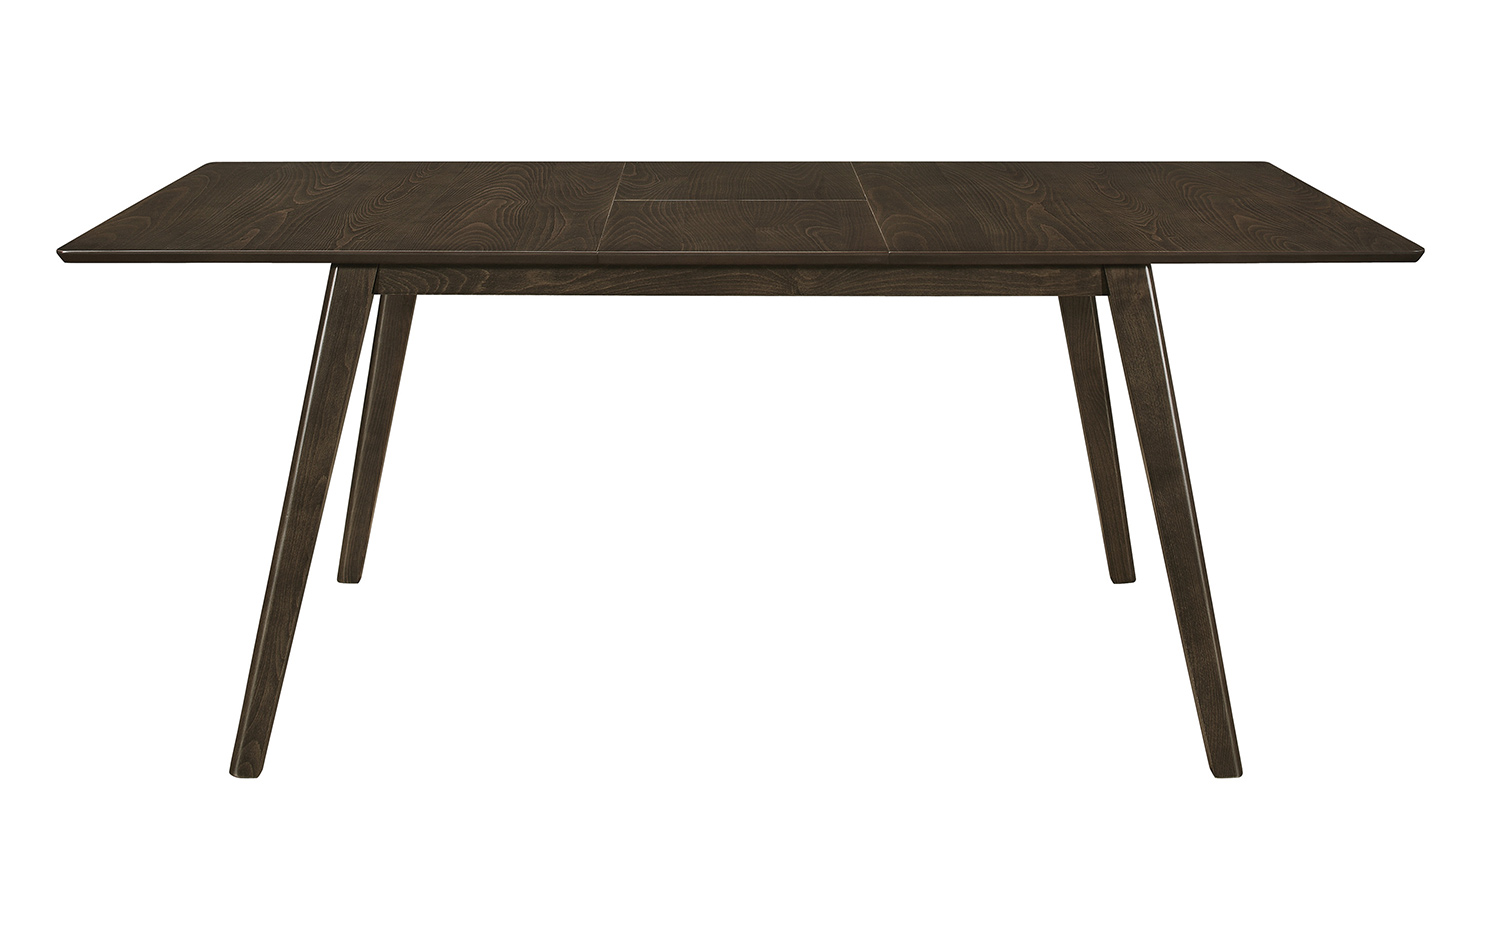 Homelegance Tannar Dining Table - Brown